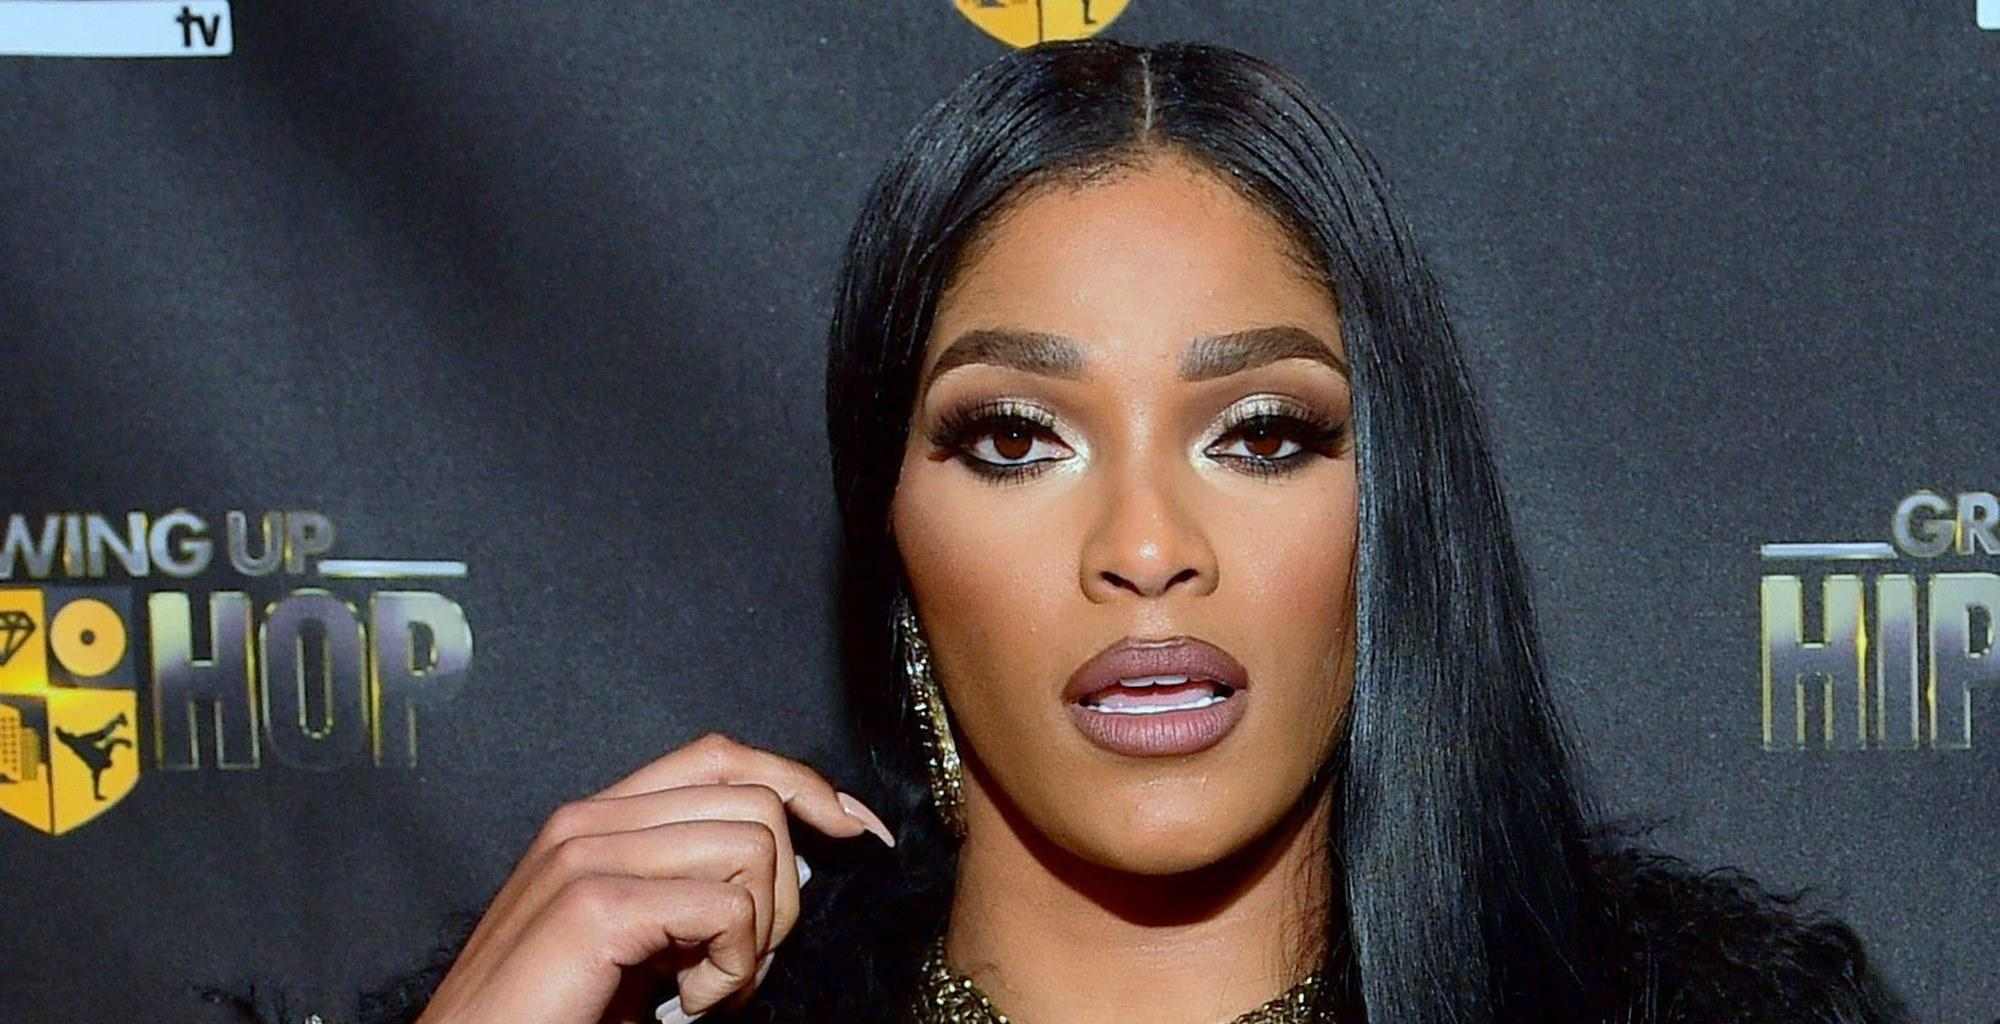 Joseline Hernandez Confirms She Has Been Naughty With Sizzling Photo Shoot In Leather Bodysuit Ahead Of Her Big TV Comeback In A Strip Club